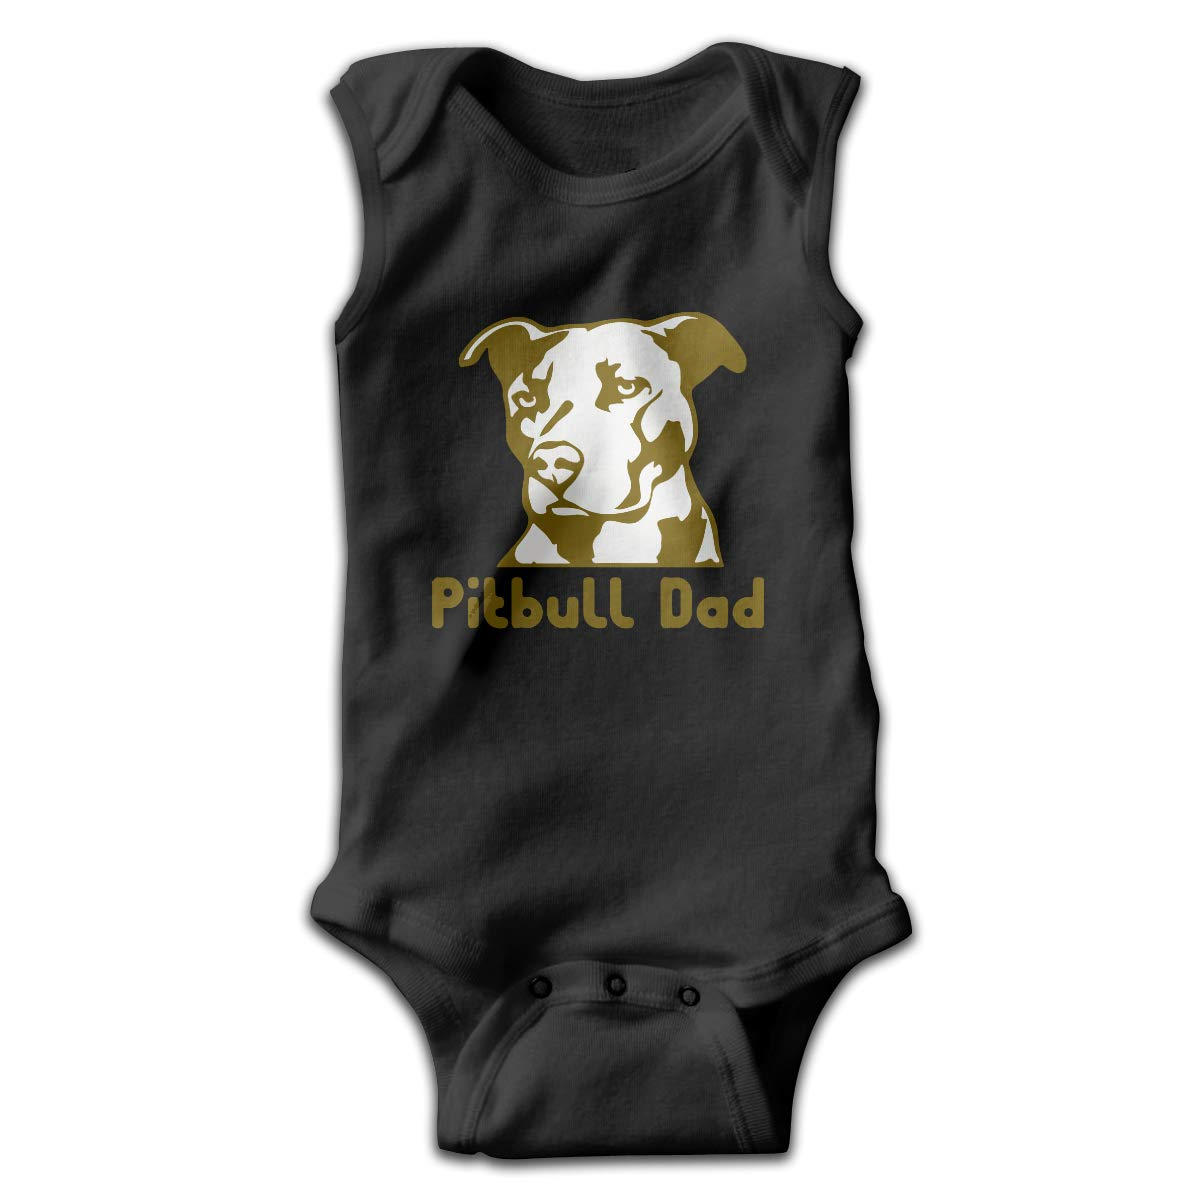 H@PAPA01 Pitbull Dad Newborn Sleeveless Pajamas Sleepwear